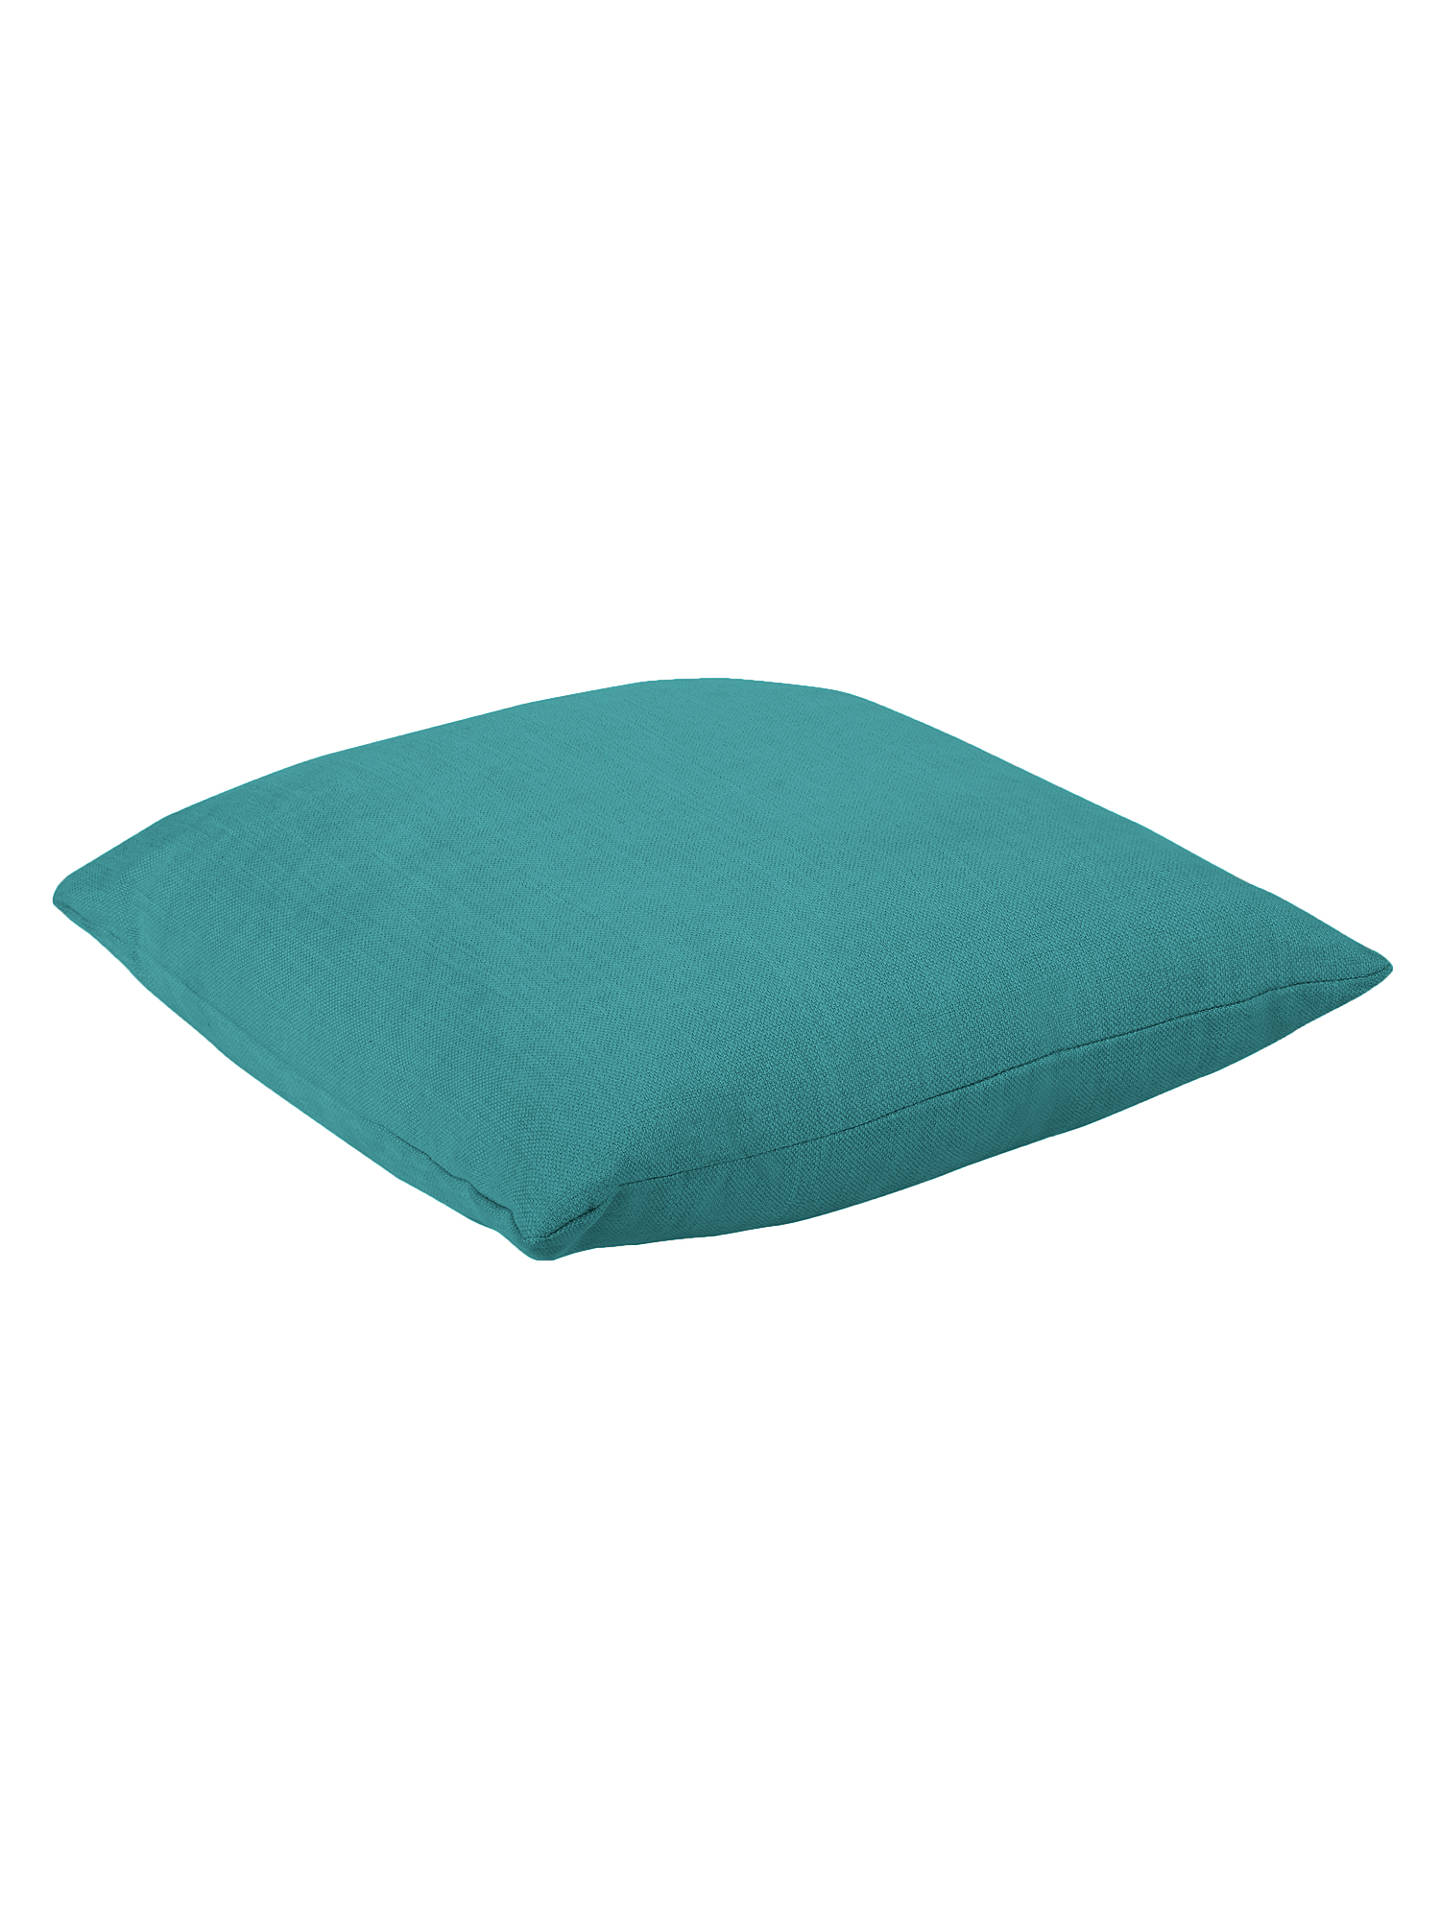 Buy Square Scatter Cushion by Loaf at John Lewis, Brushed Cotton Peacock Online at johnlewis.com